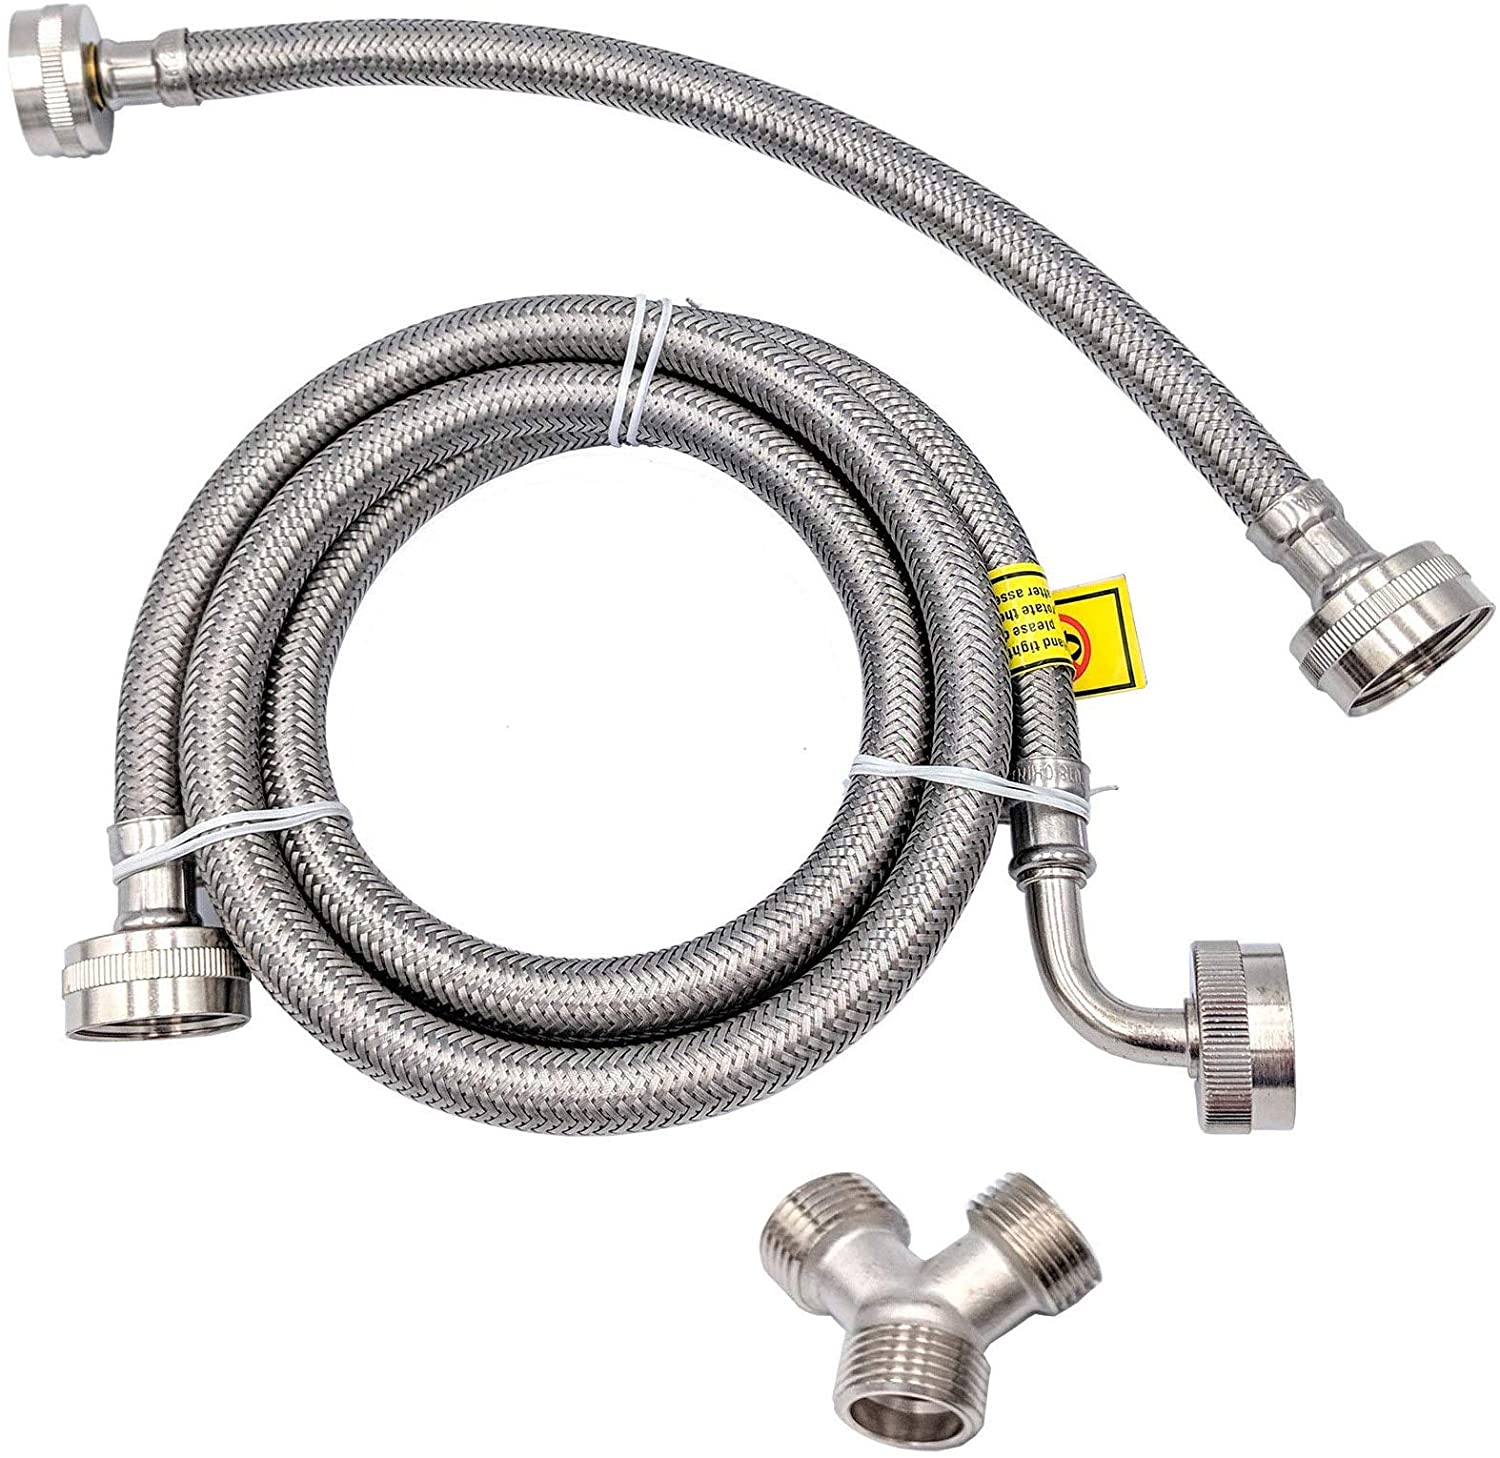 Supplying Demand 41025 Clothes Dryer Steam Hose Installation Kit Braided Stainless Steel 5 Ft With Elbow